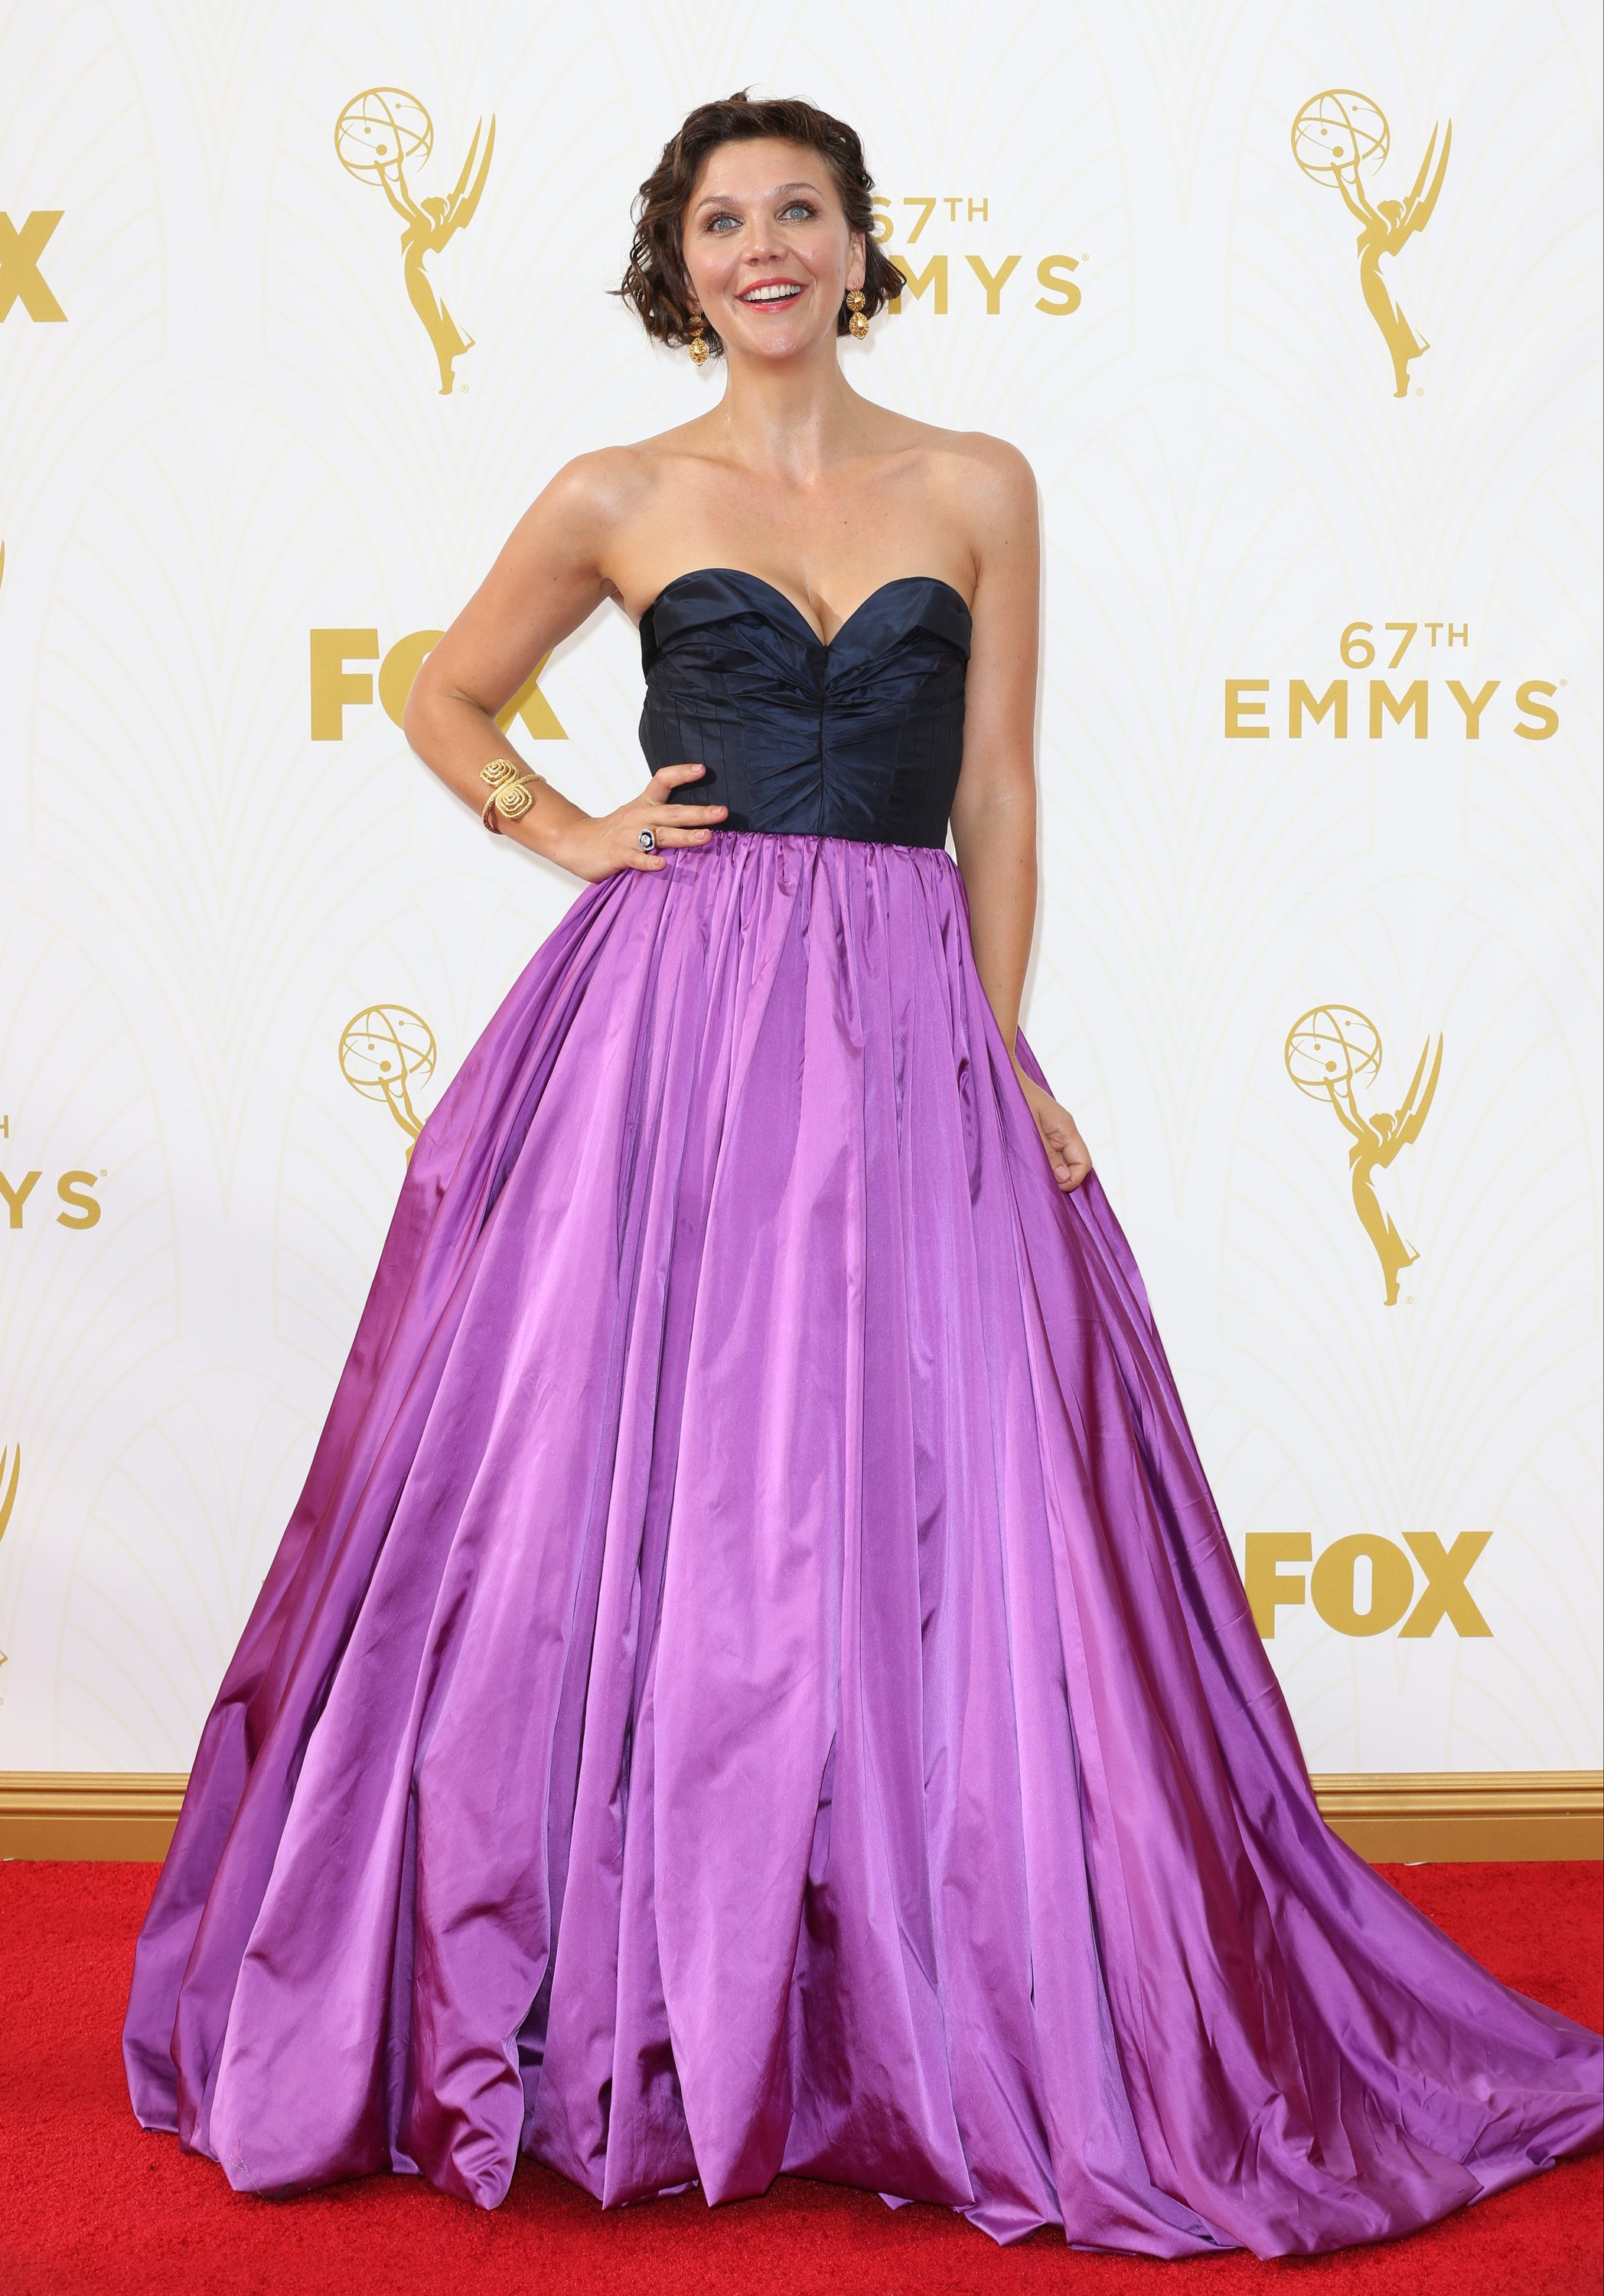 Celebrities arrive at 67th Emmys Red Carpet at Microsoft Theater.  Featuring: Maggie Gyllenhaal Where: Los Angeles, California, United States When: 20 Sep 2015 Credit: Brian To/WENN.com